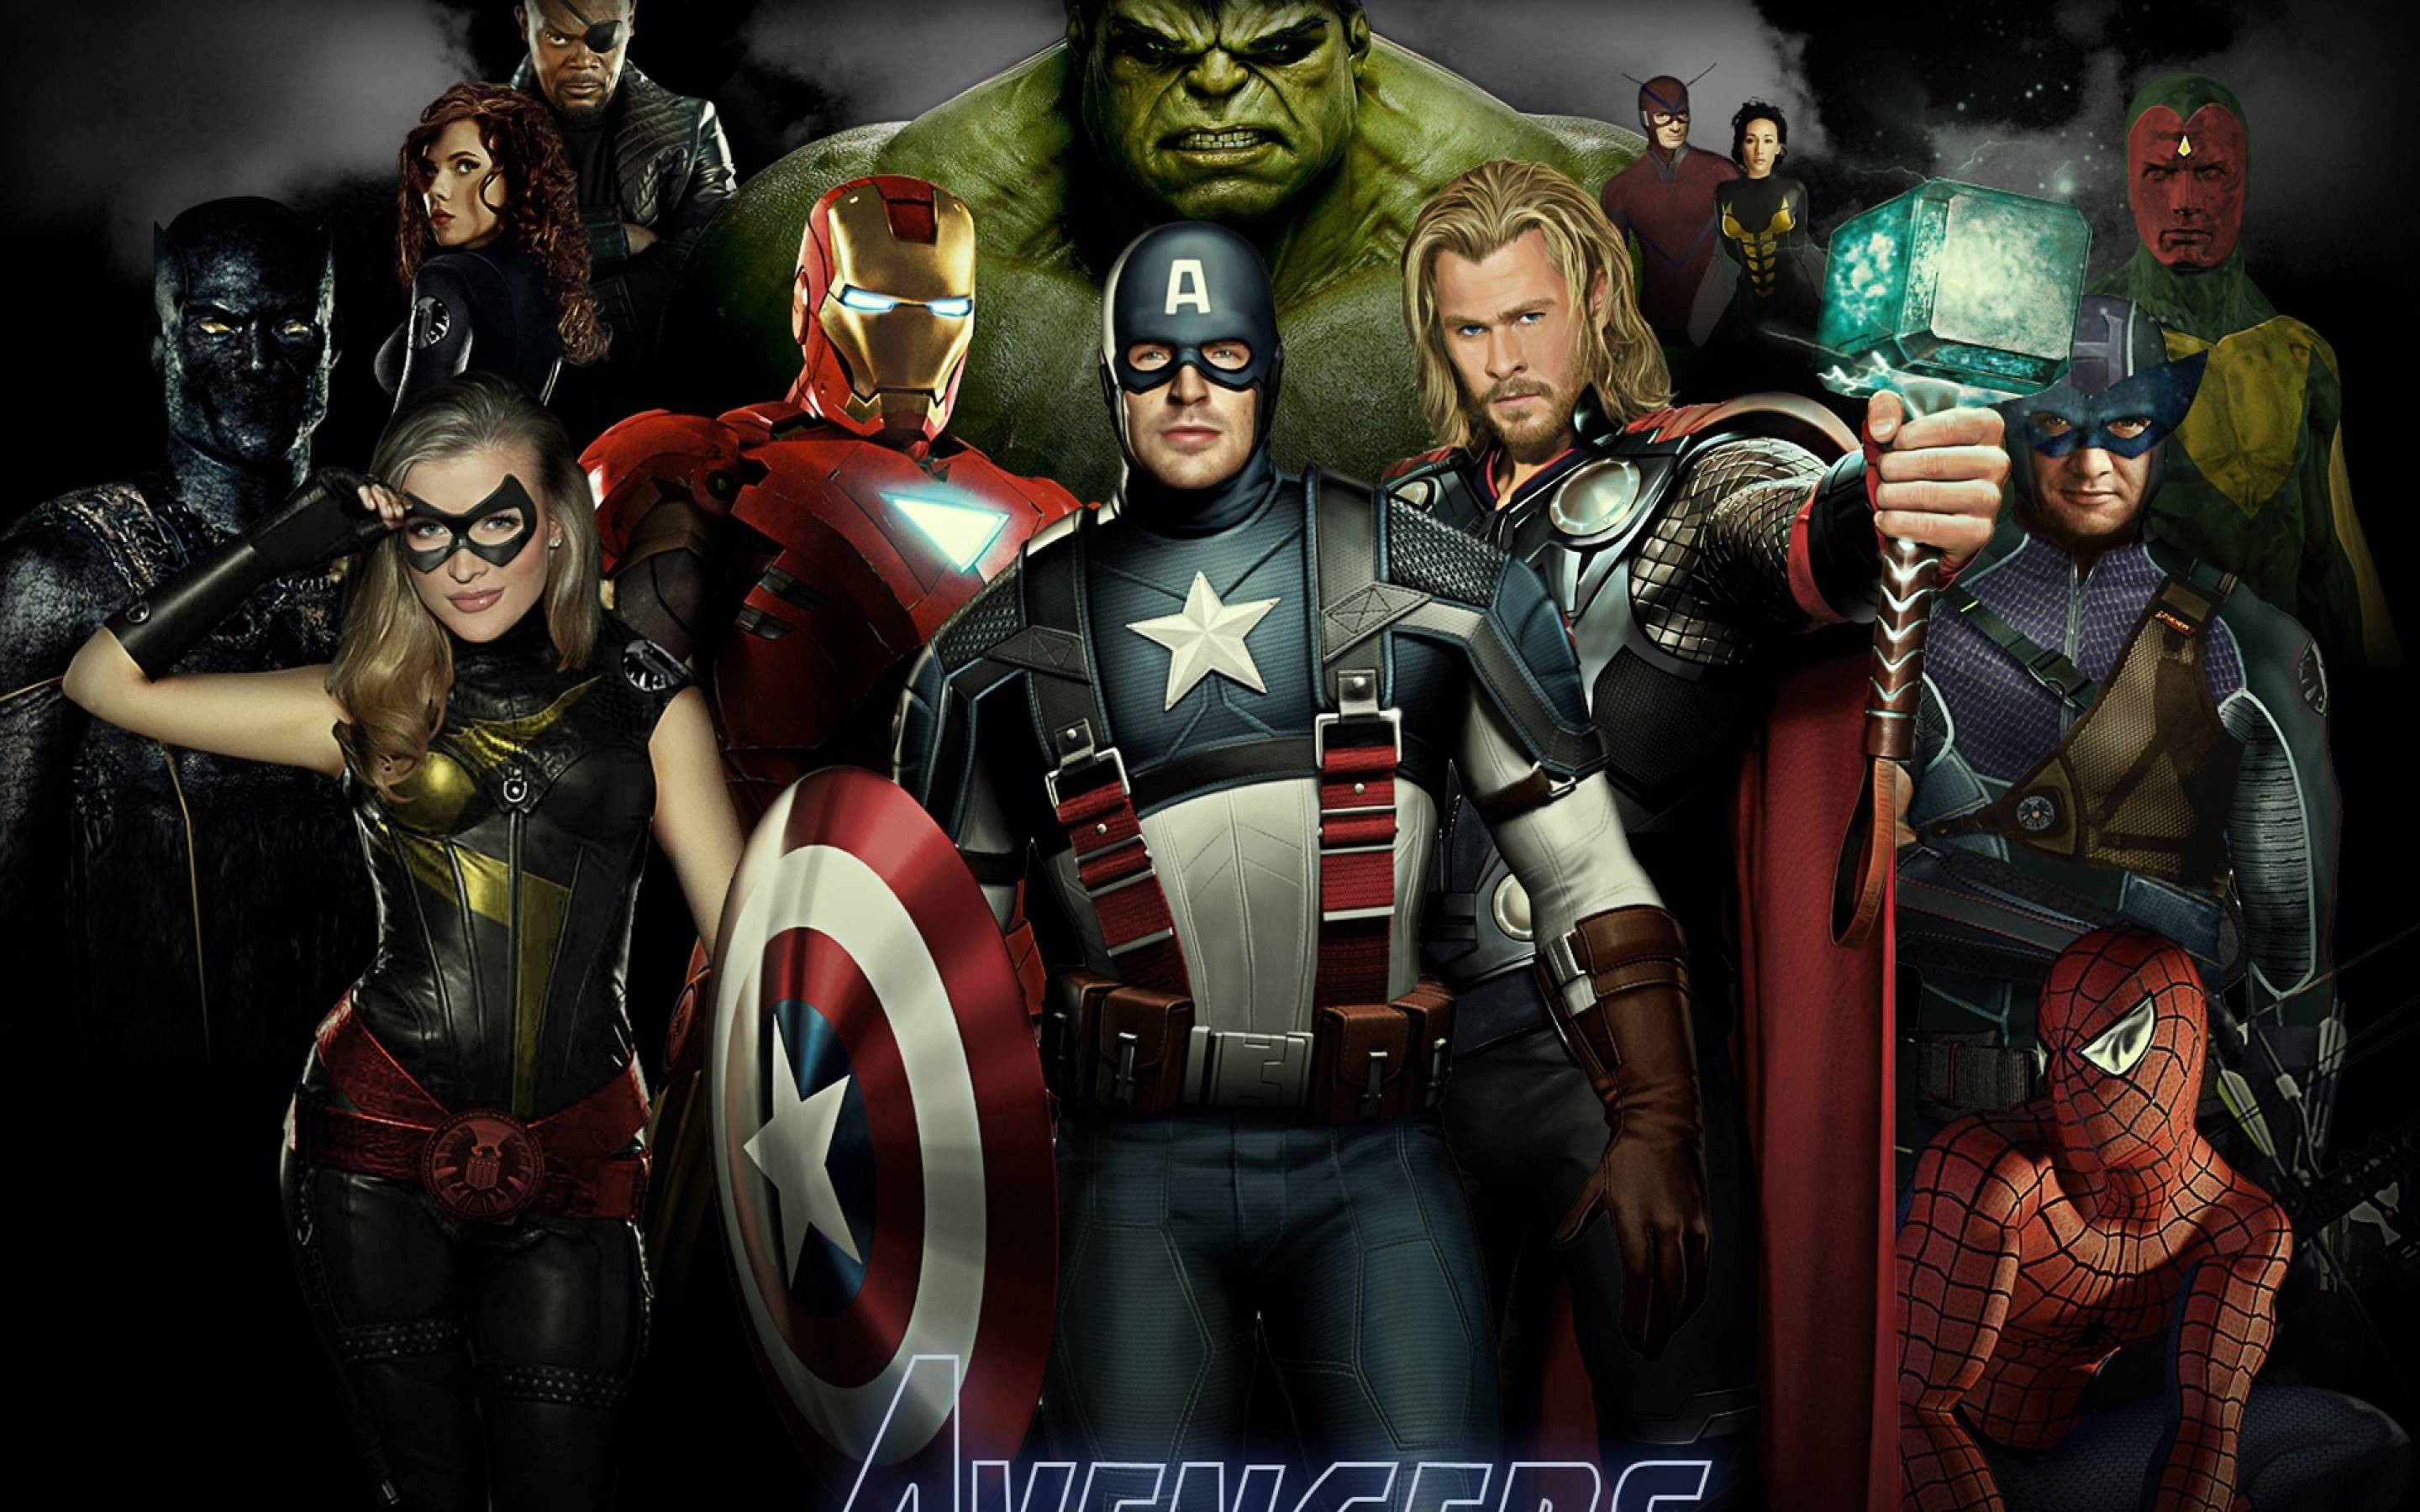 Avengers wallpaper download free amazing full hd - Marvel android wallpaper hd ...